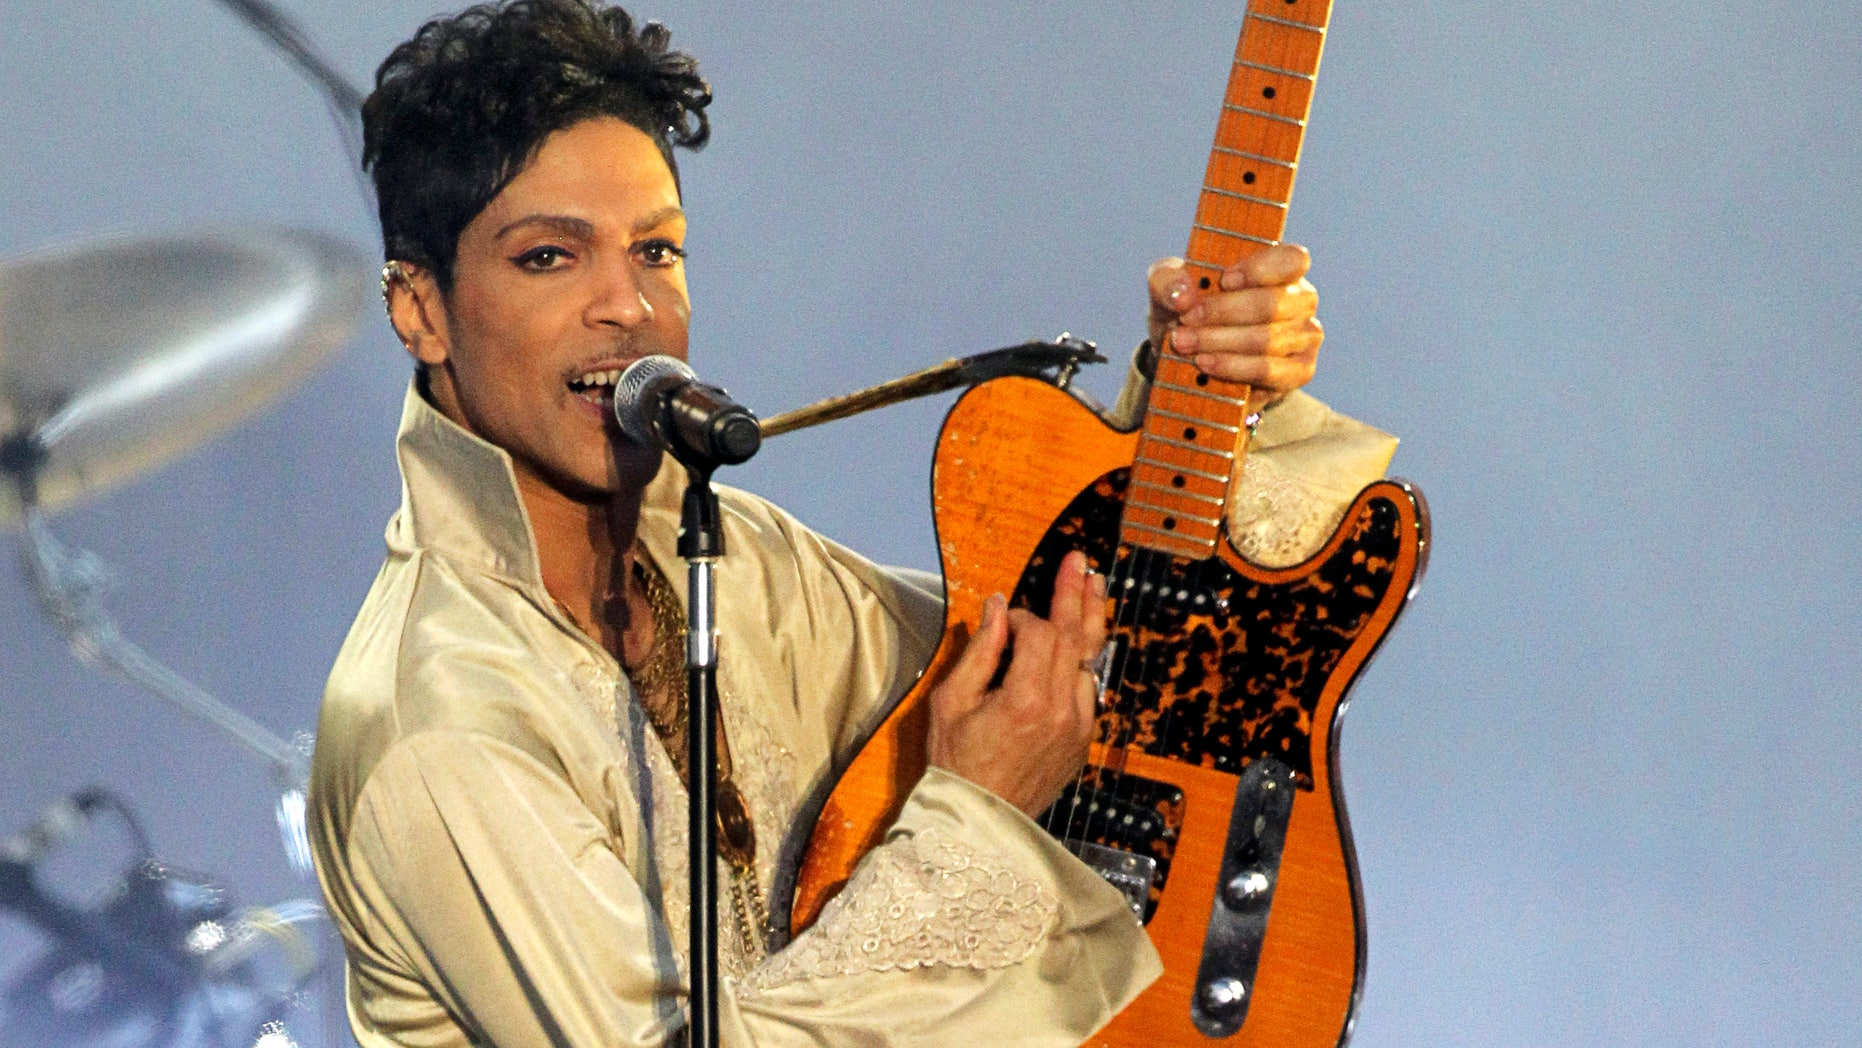 Prince performs in Britain in 2007.